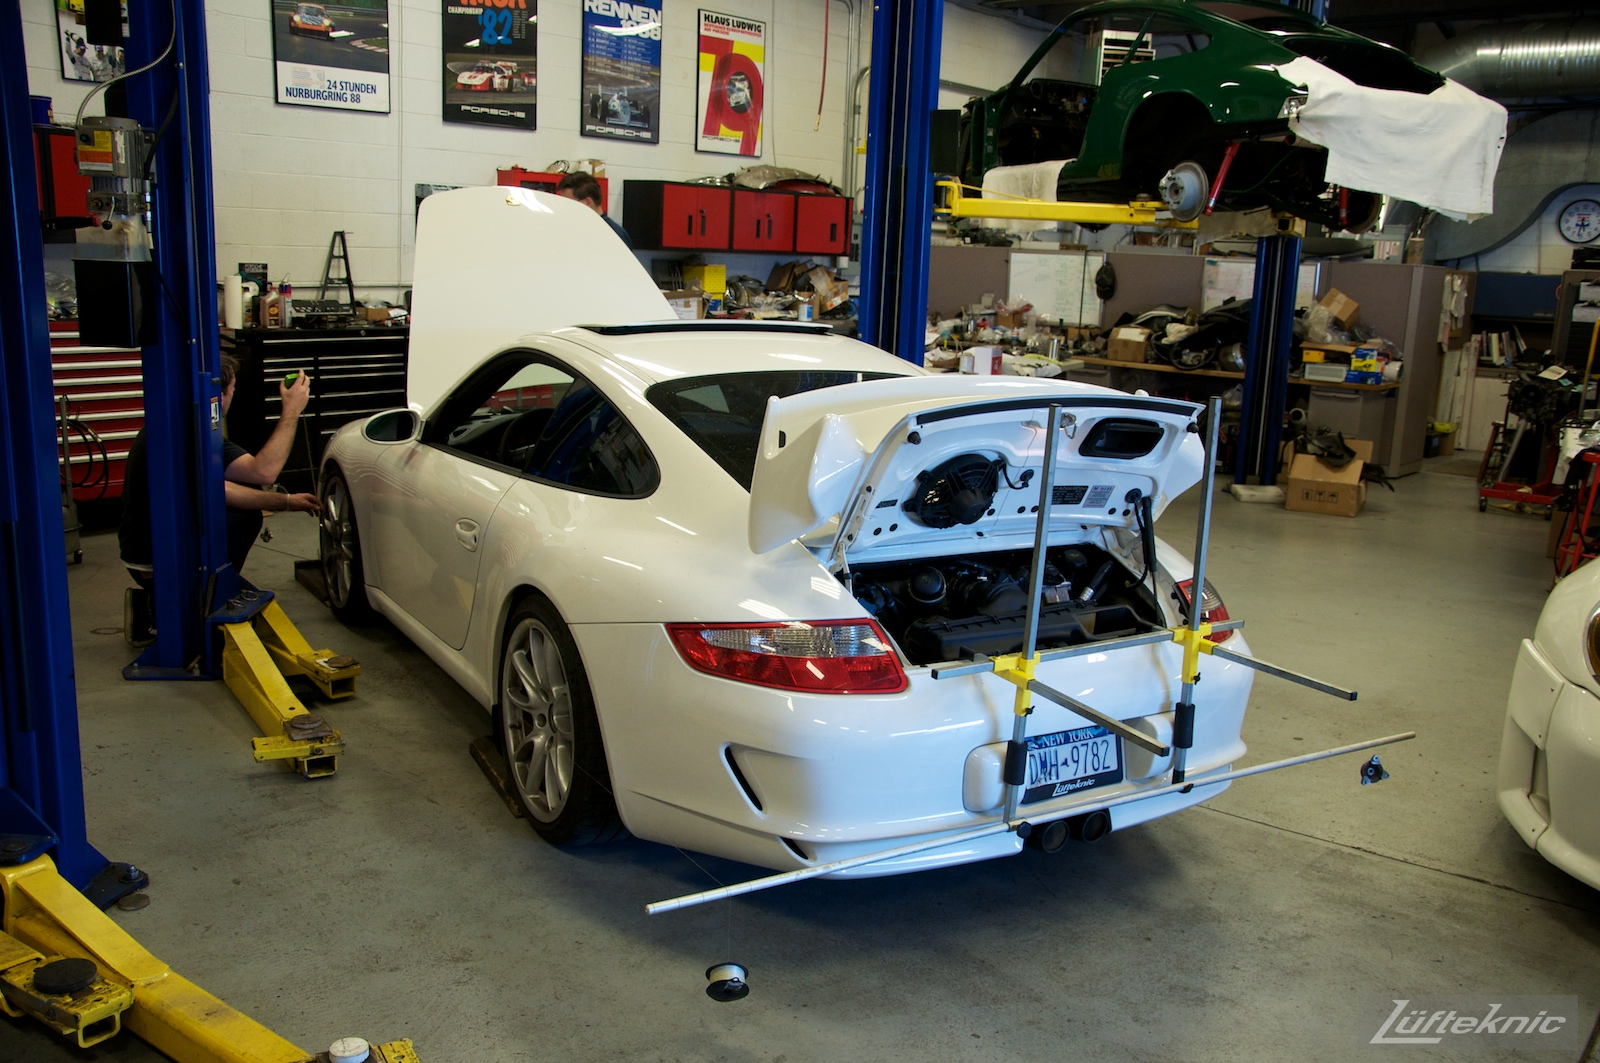 A white 993 GT3 being aligned at the Lufteknic shop.